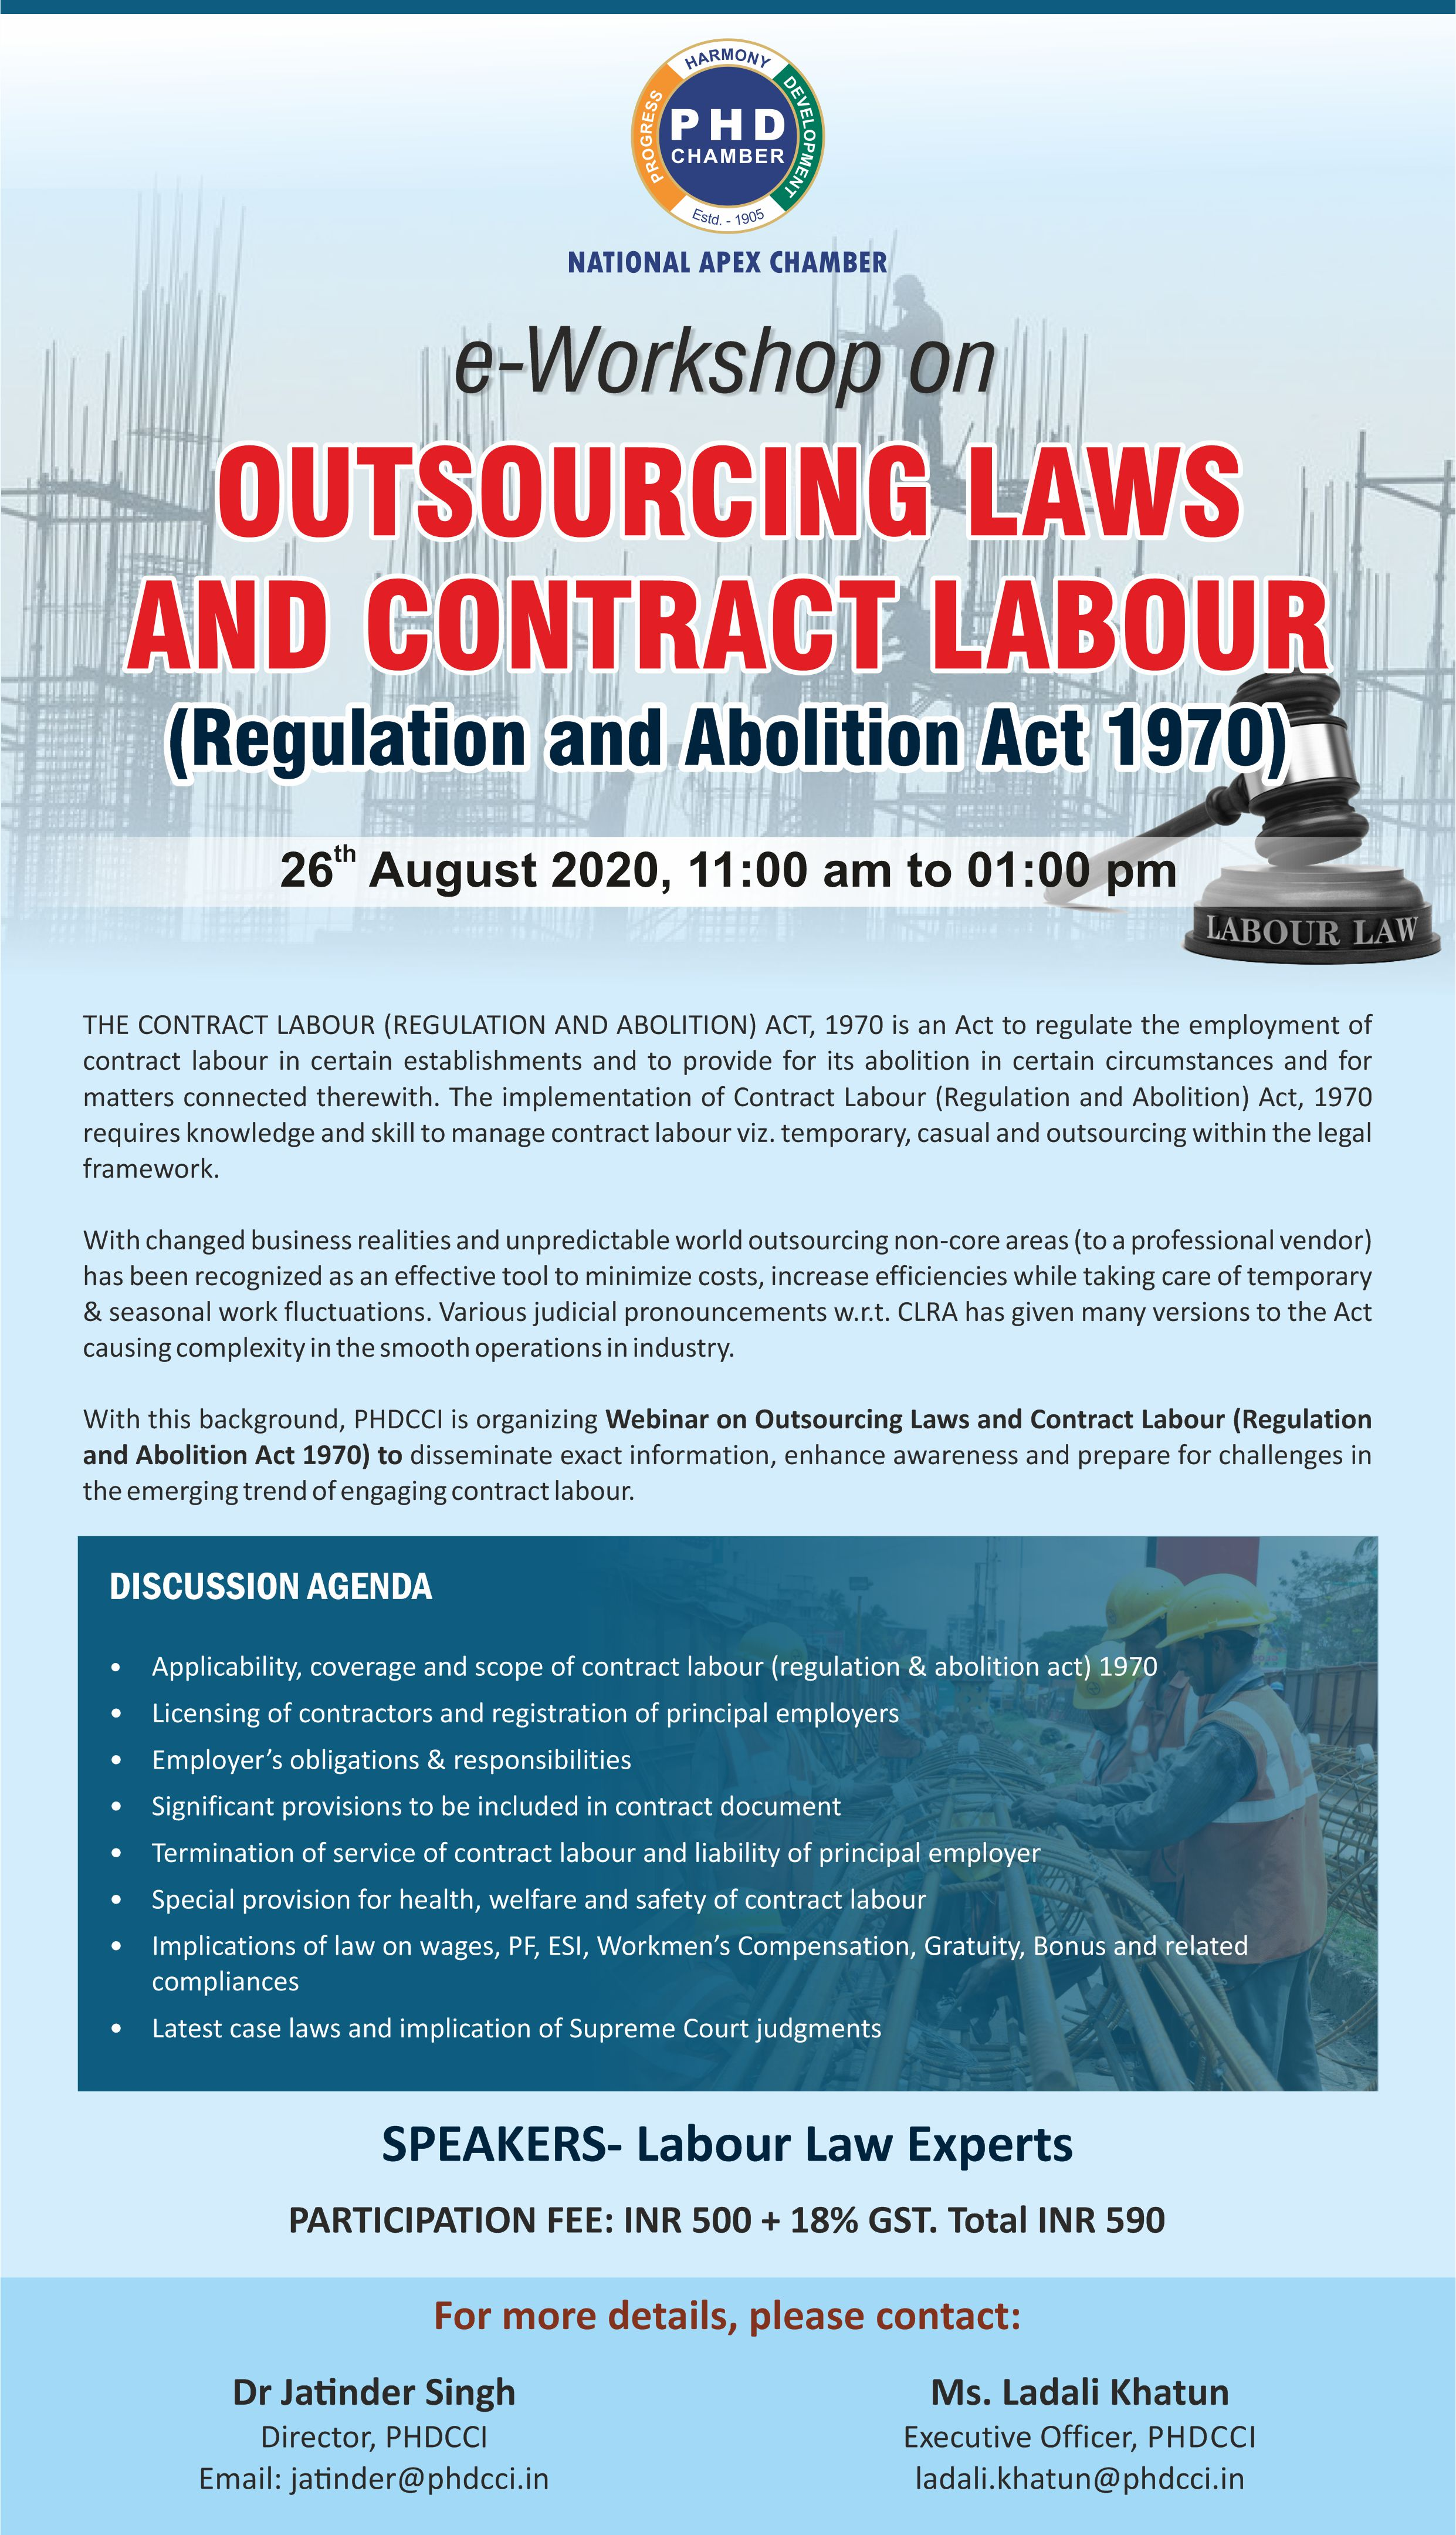 e-Workshop on Outsourcing Laws and Contract Labour (Regulation and Abolition Act 1970)